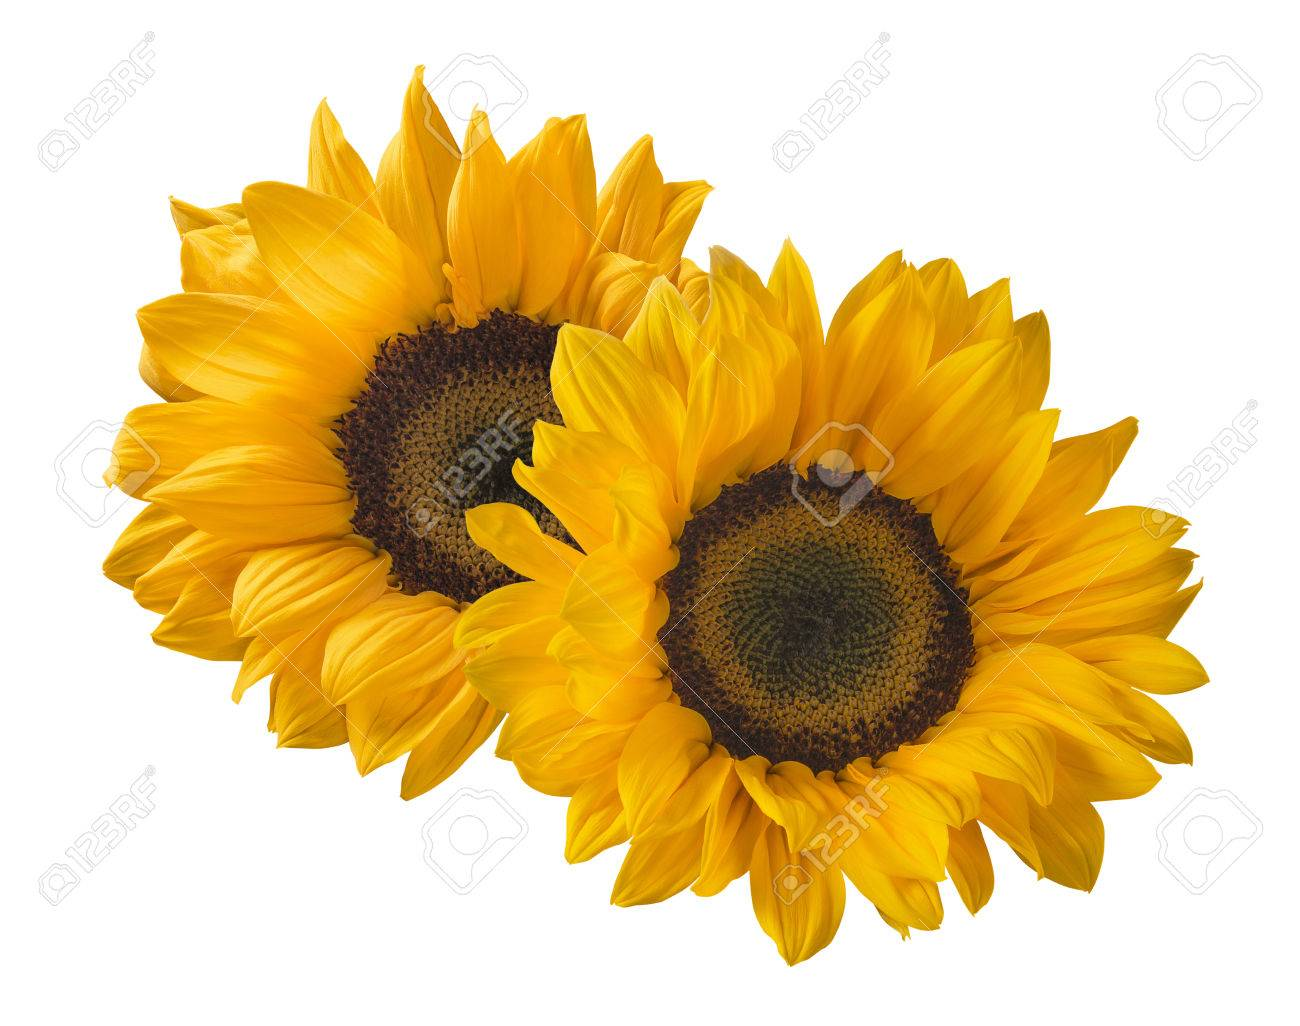 2 sunflower isolated on white background as package design element - 60740687